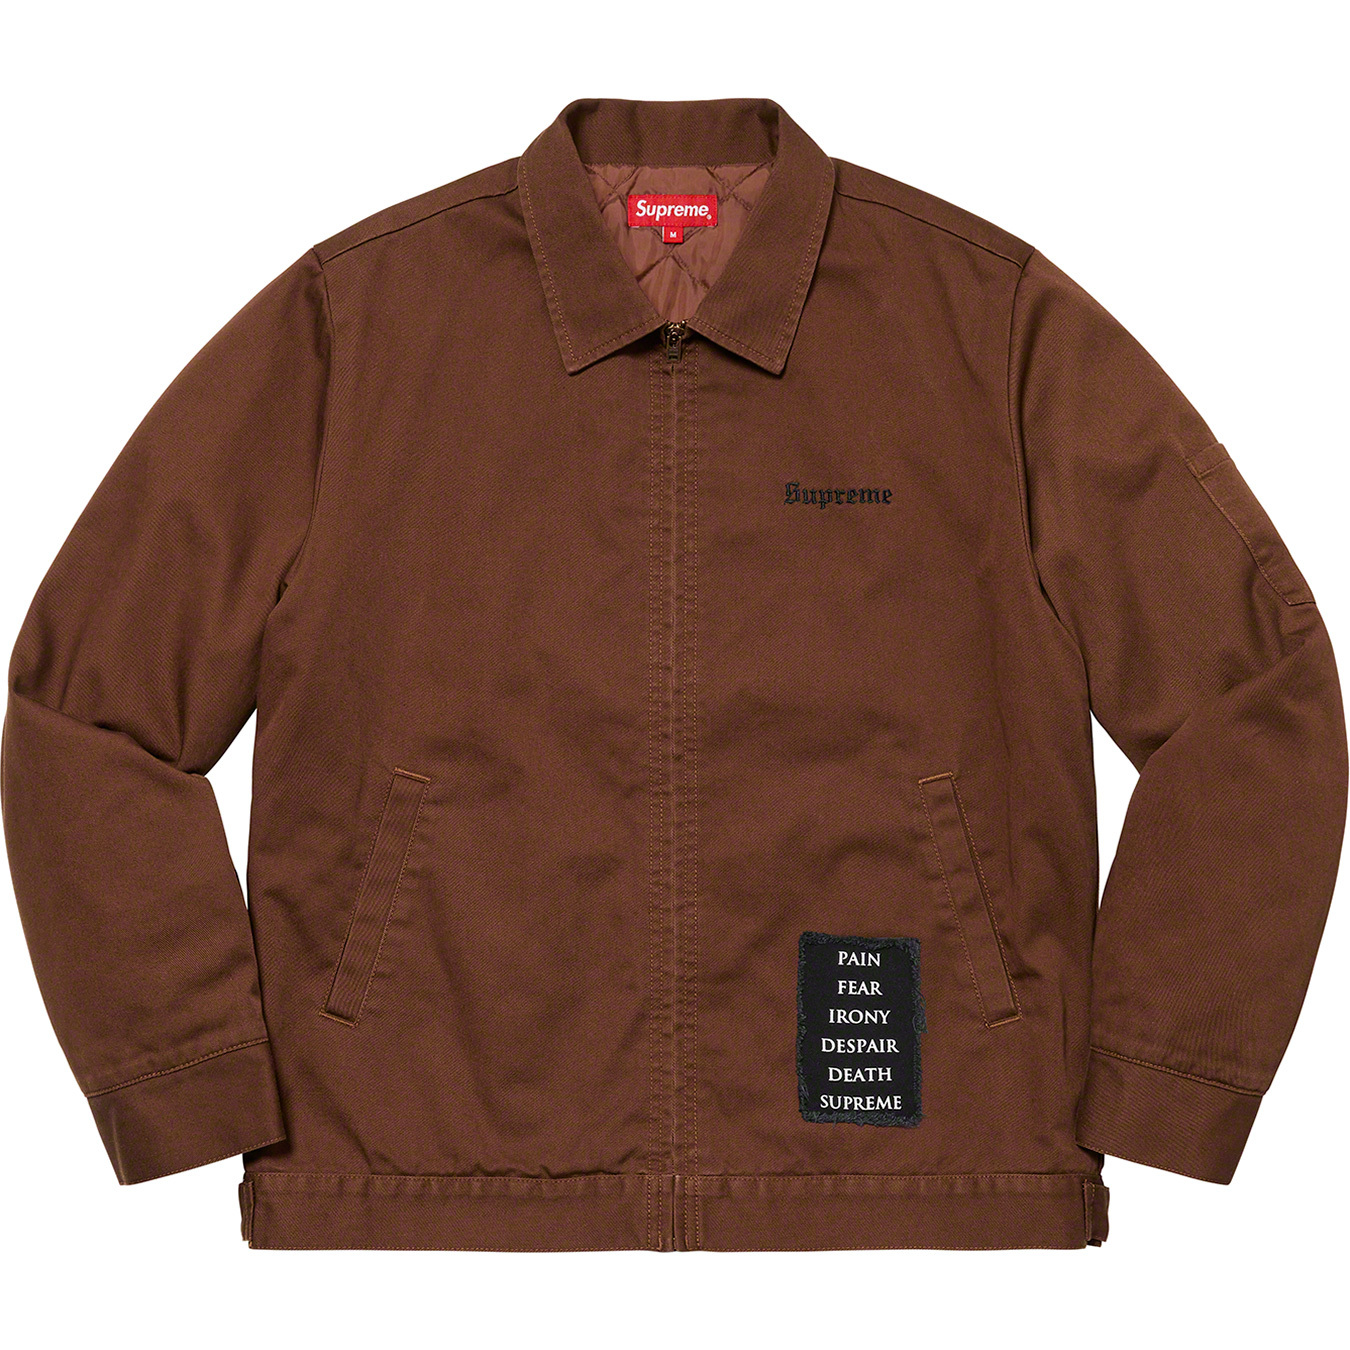 supreme-the-crow-21aw-21fw-collaboration-release-20210918-week4-work-jacket